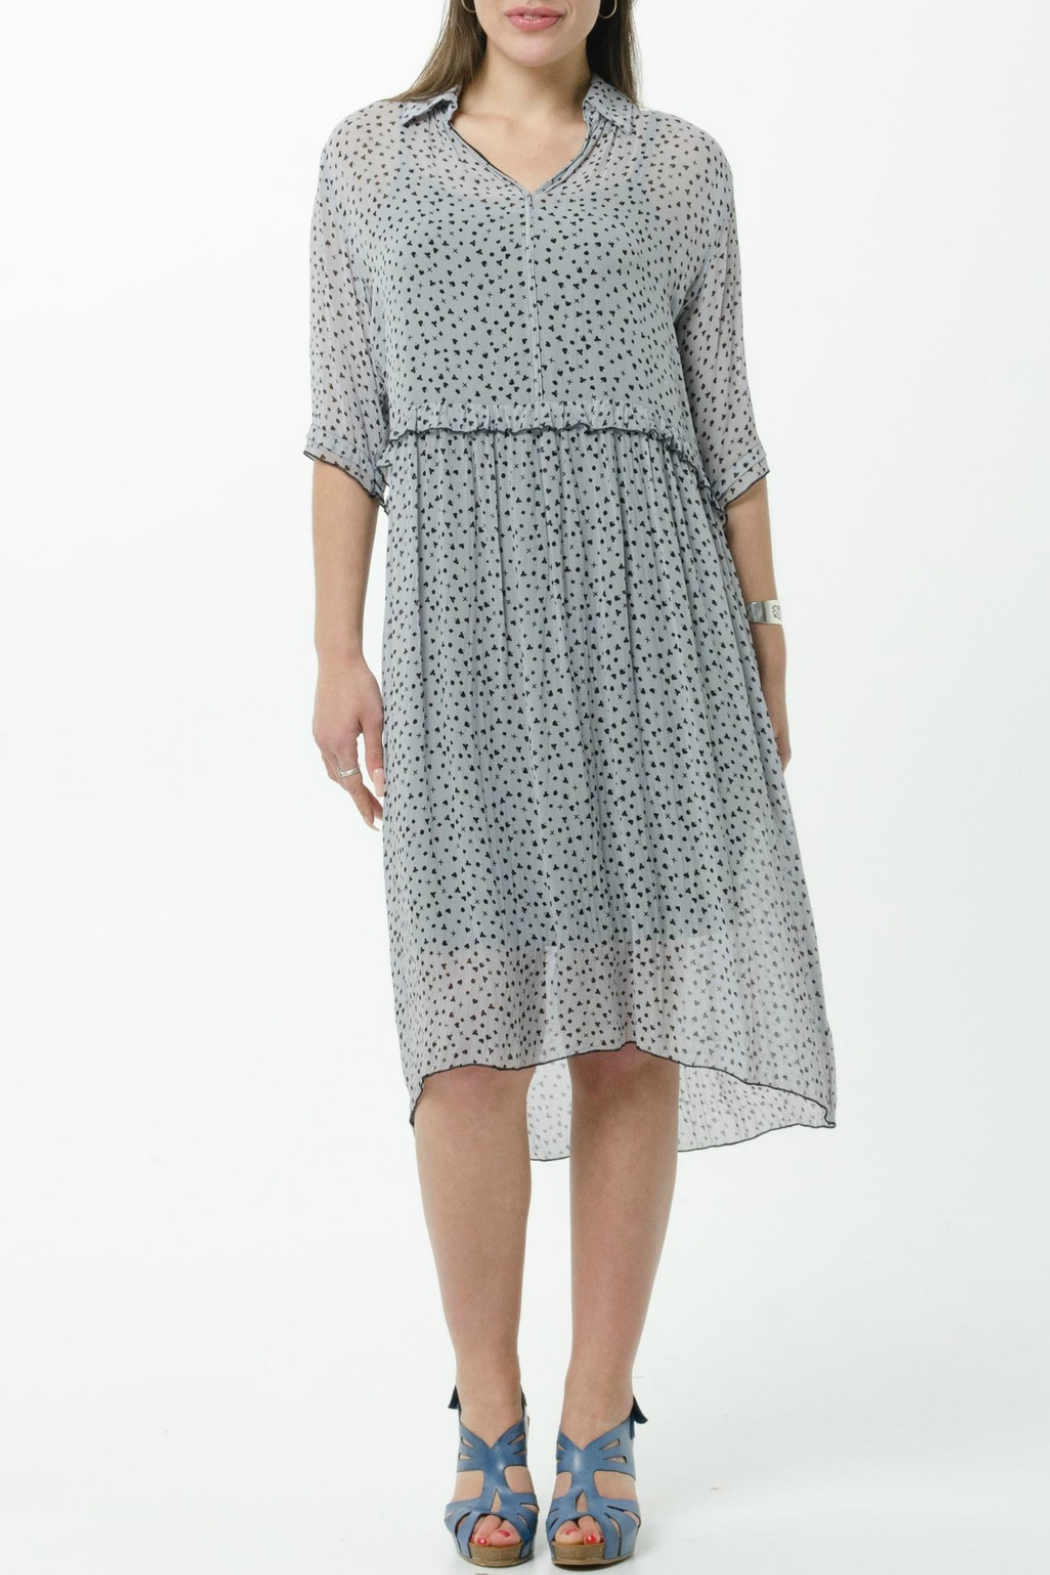 JUNA Viscose  Print Dress - Main Image